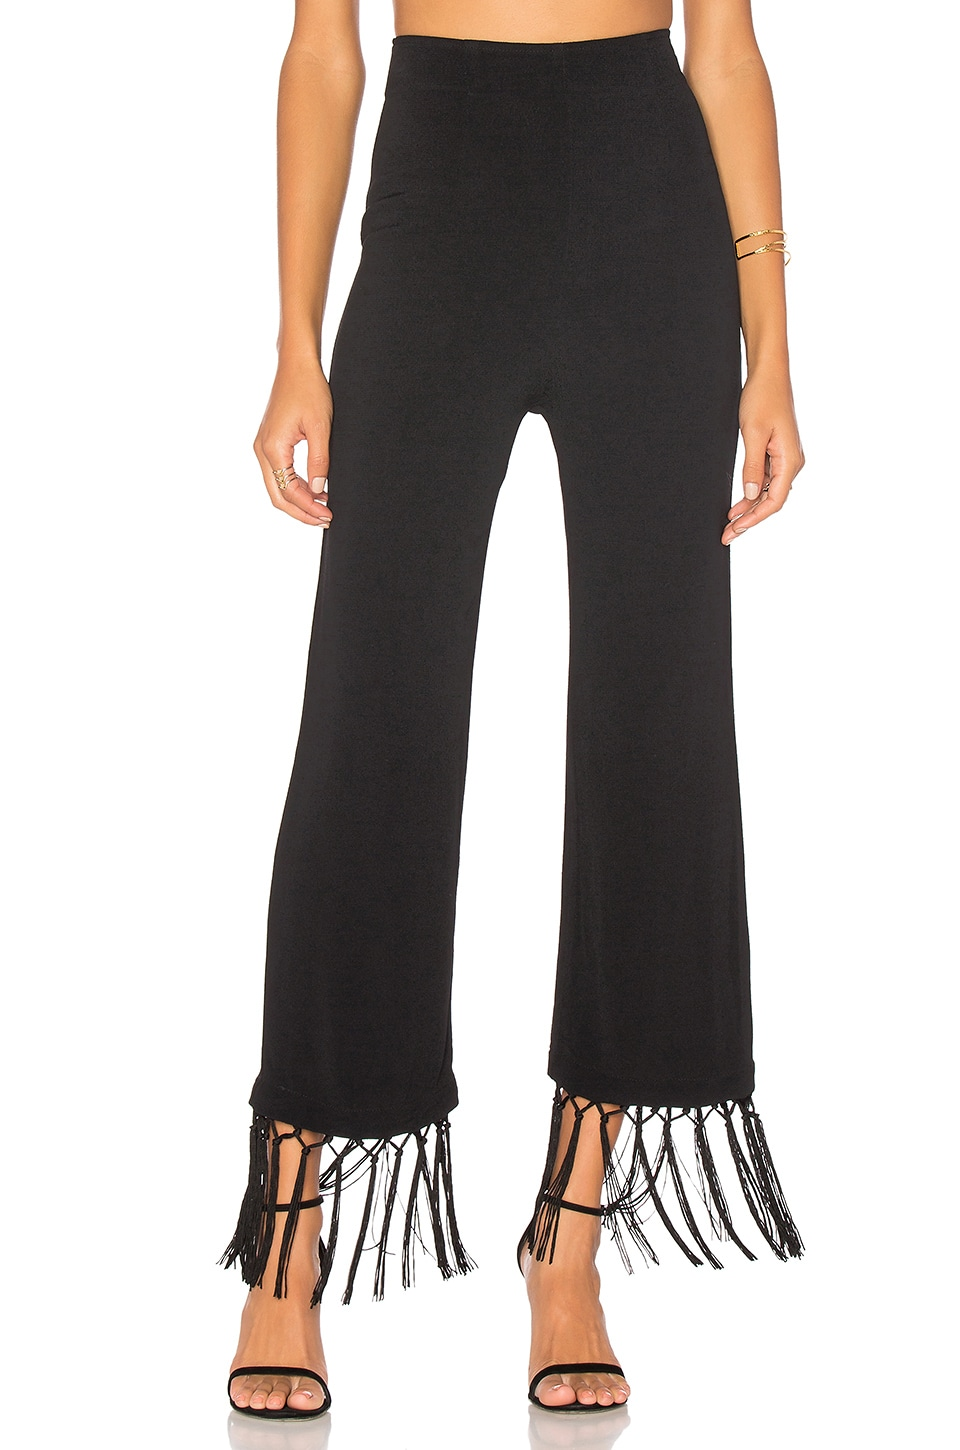 FLYNN SKYE Party Pant in Black